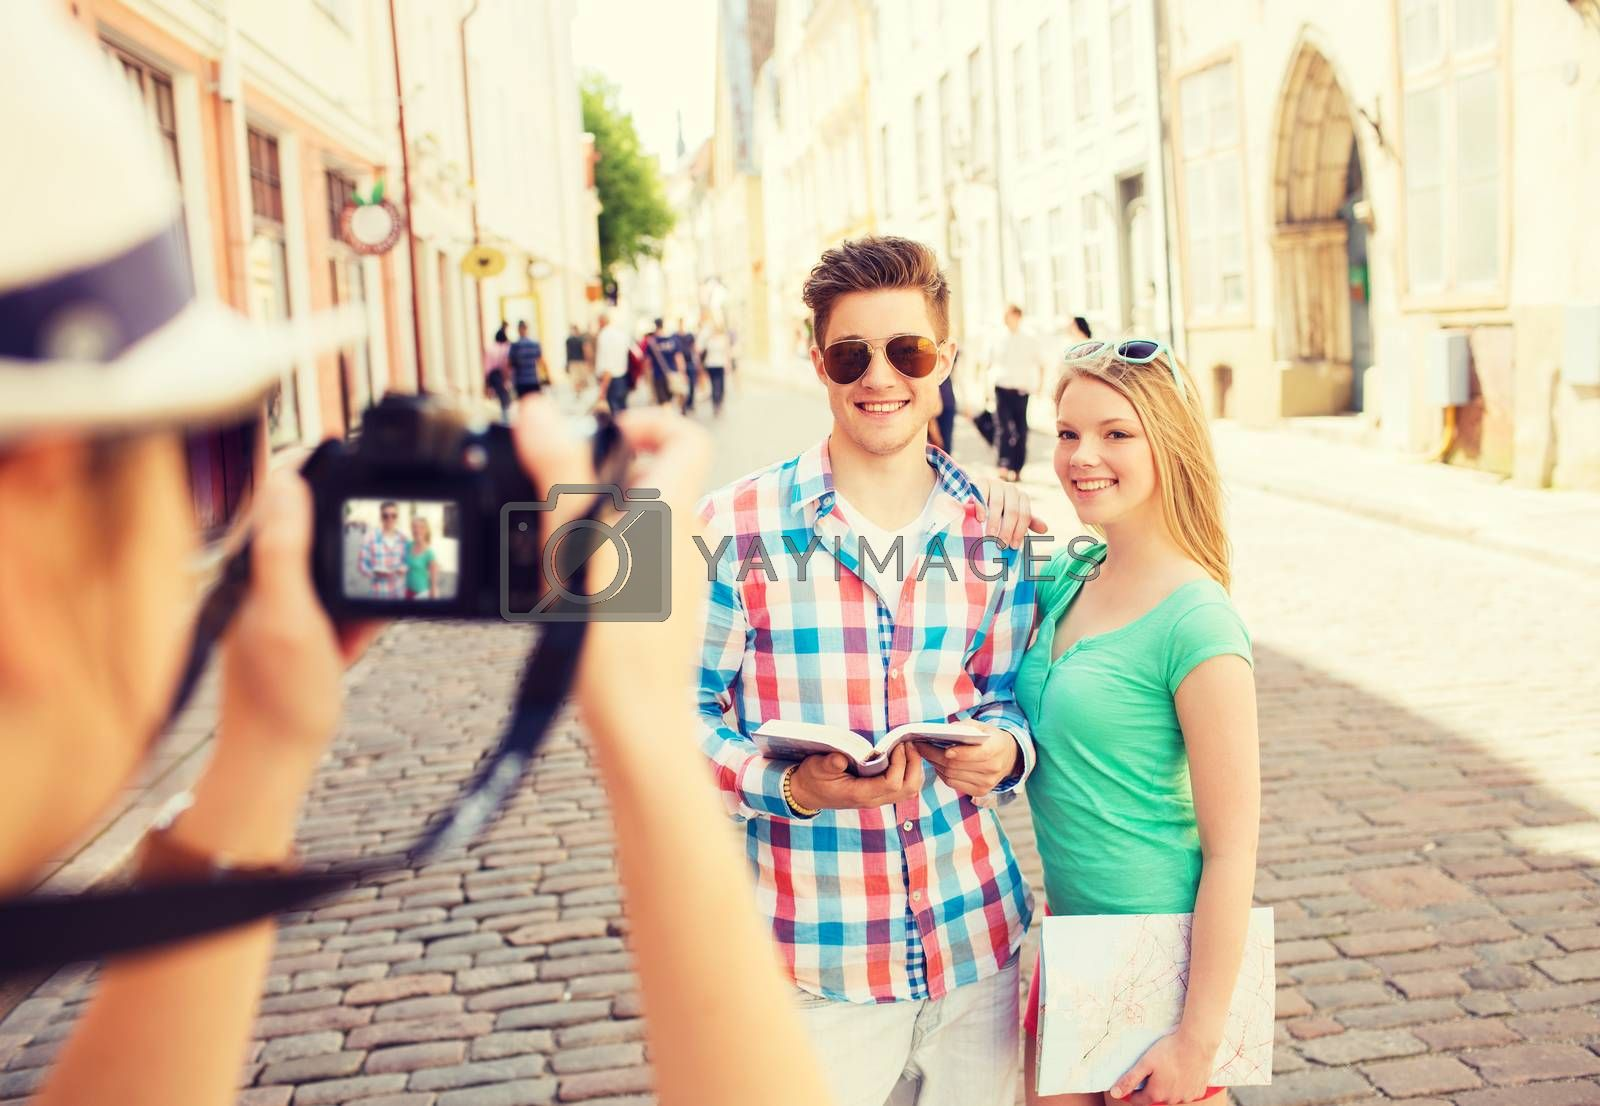 Royalty free image of smiling couple with map and photo camera in city by dolgachov